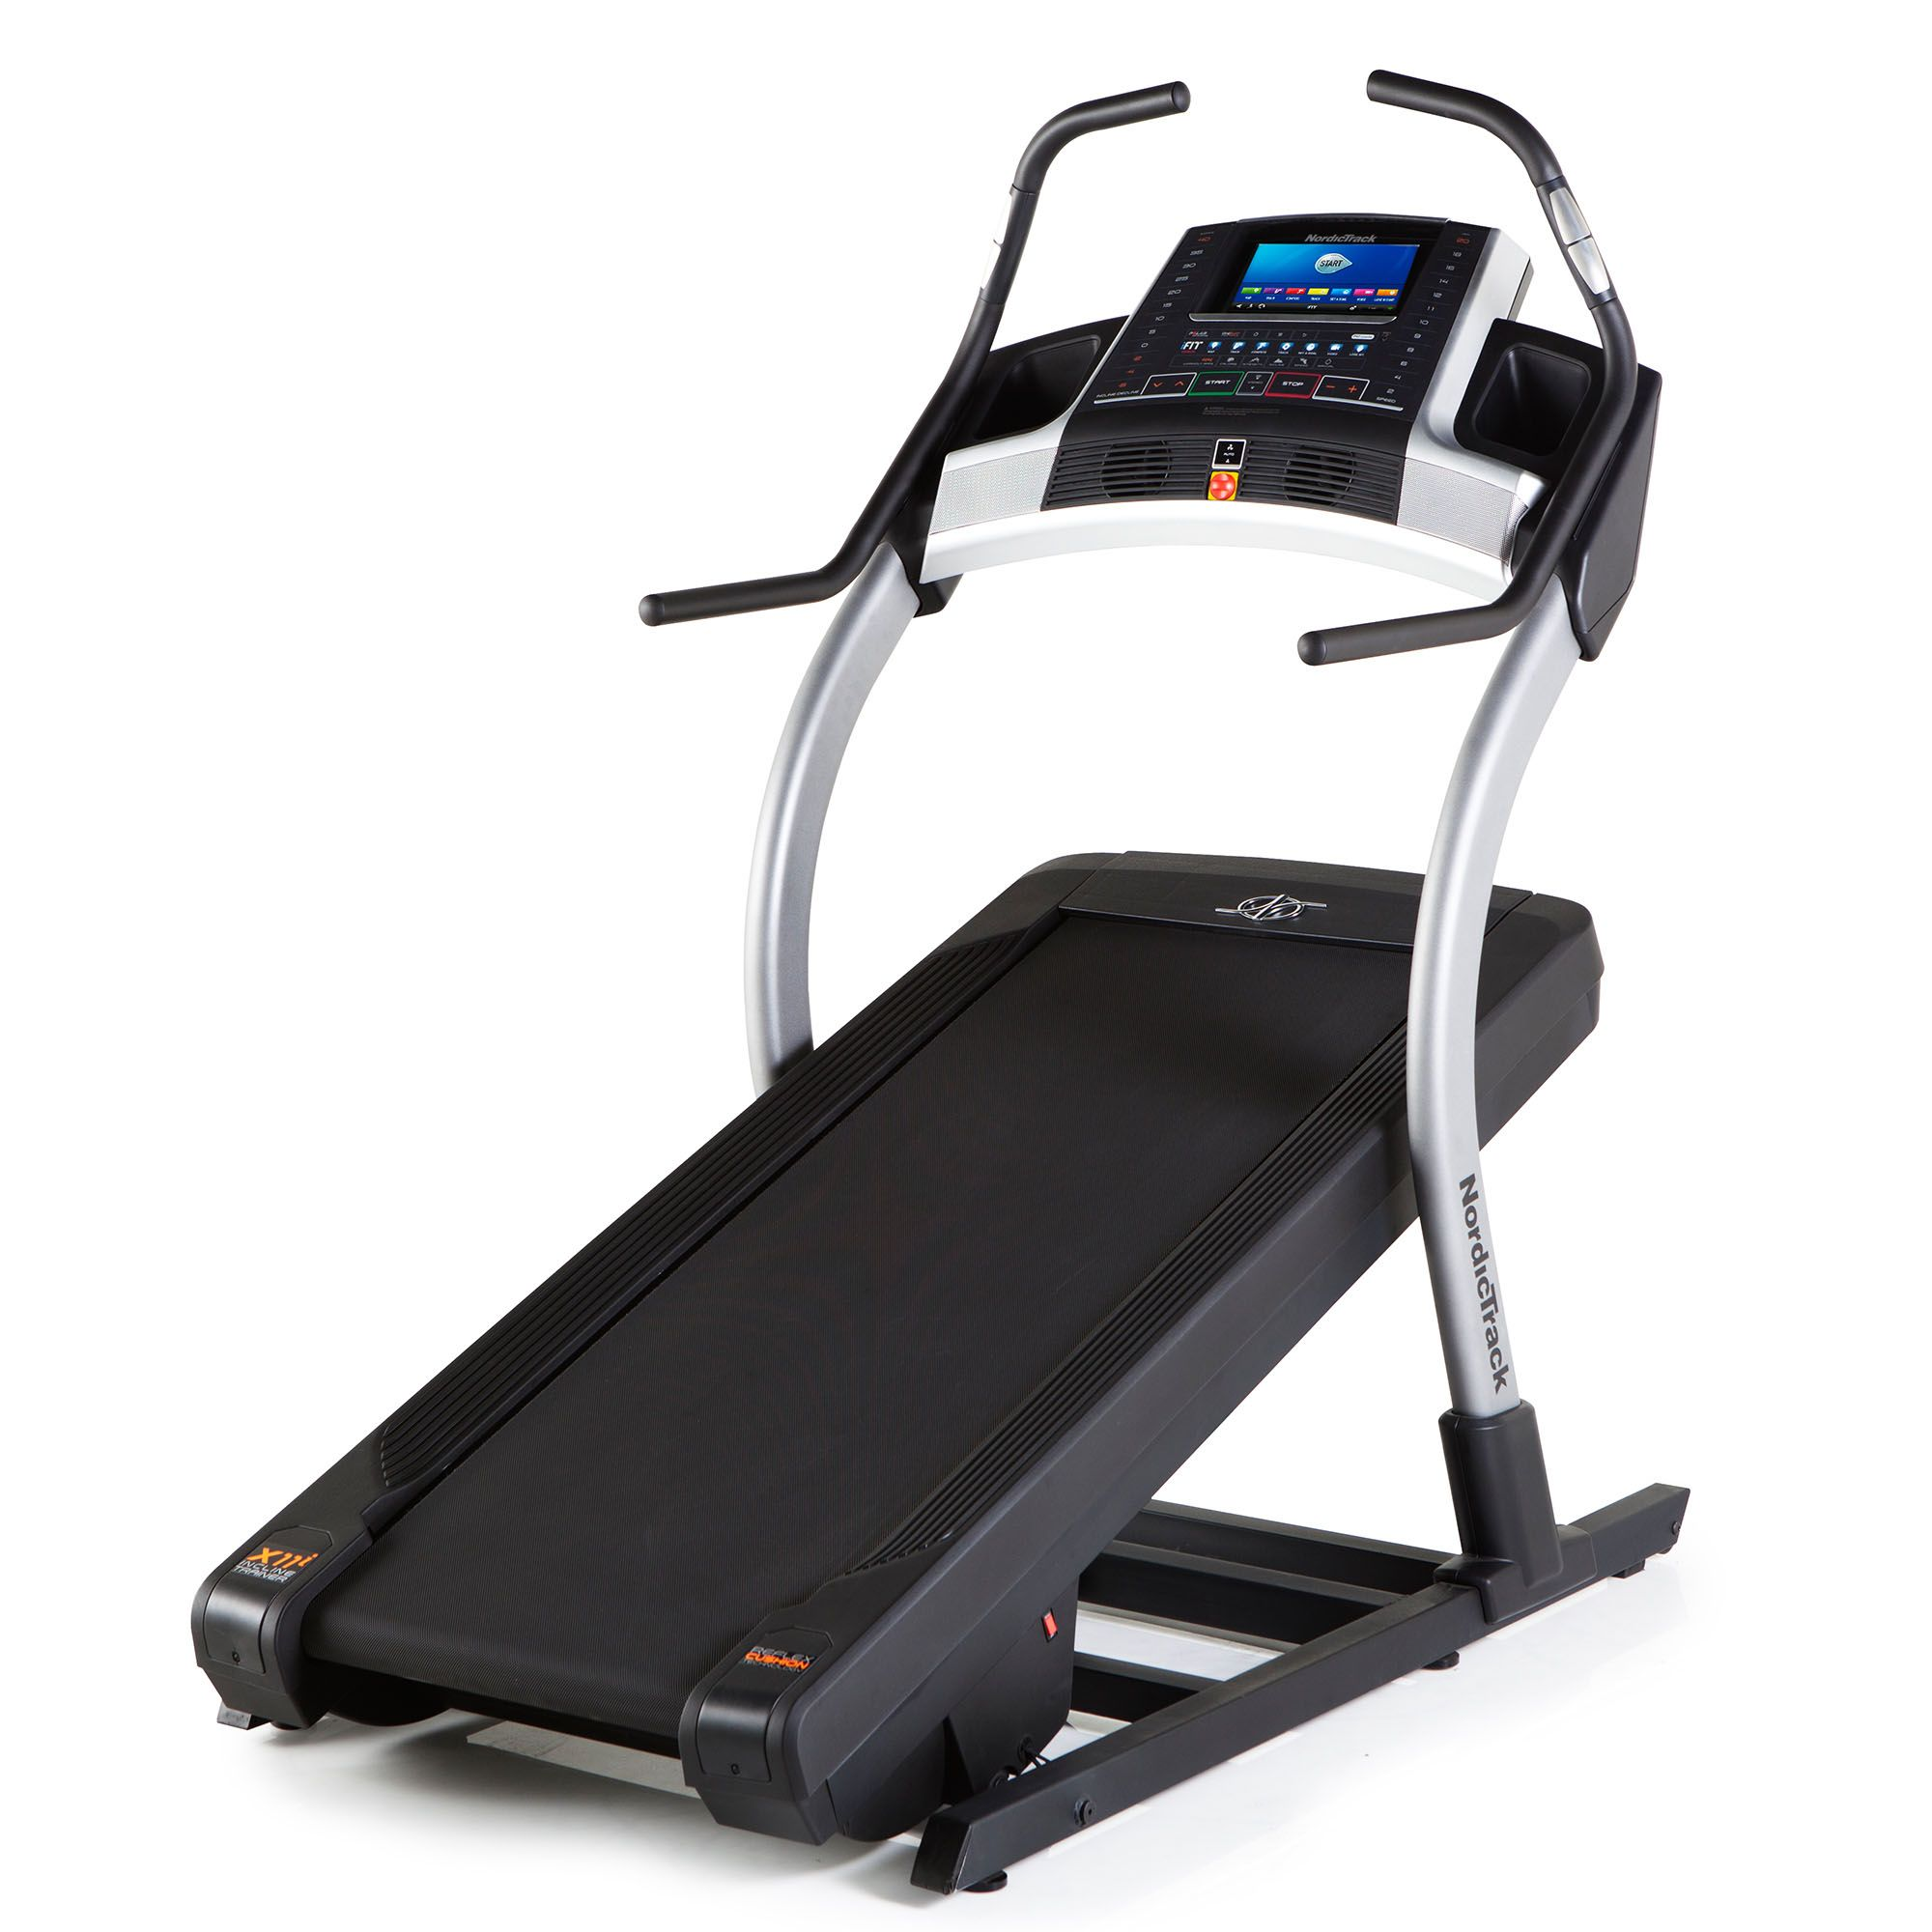 nordictrack x9i incline trainer. Black Bedroom Furniture Sets. Home Design Ideas